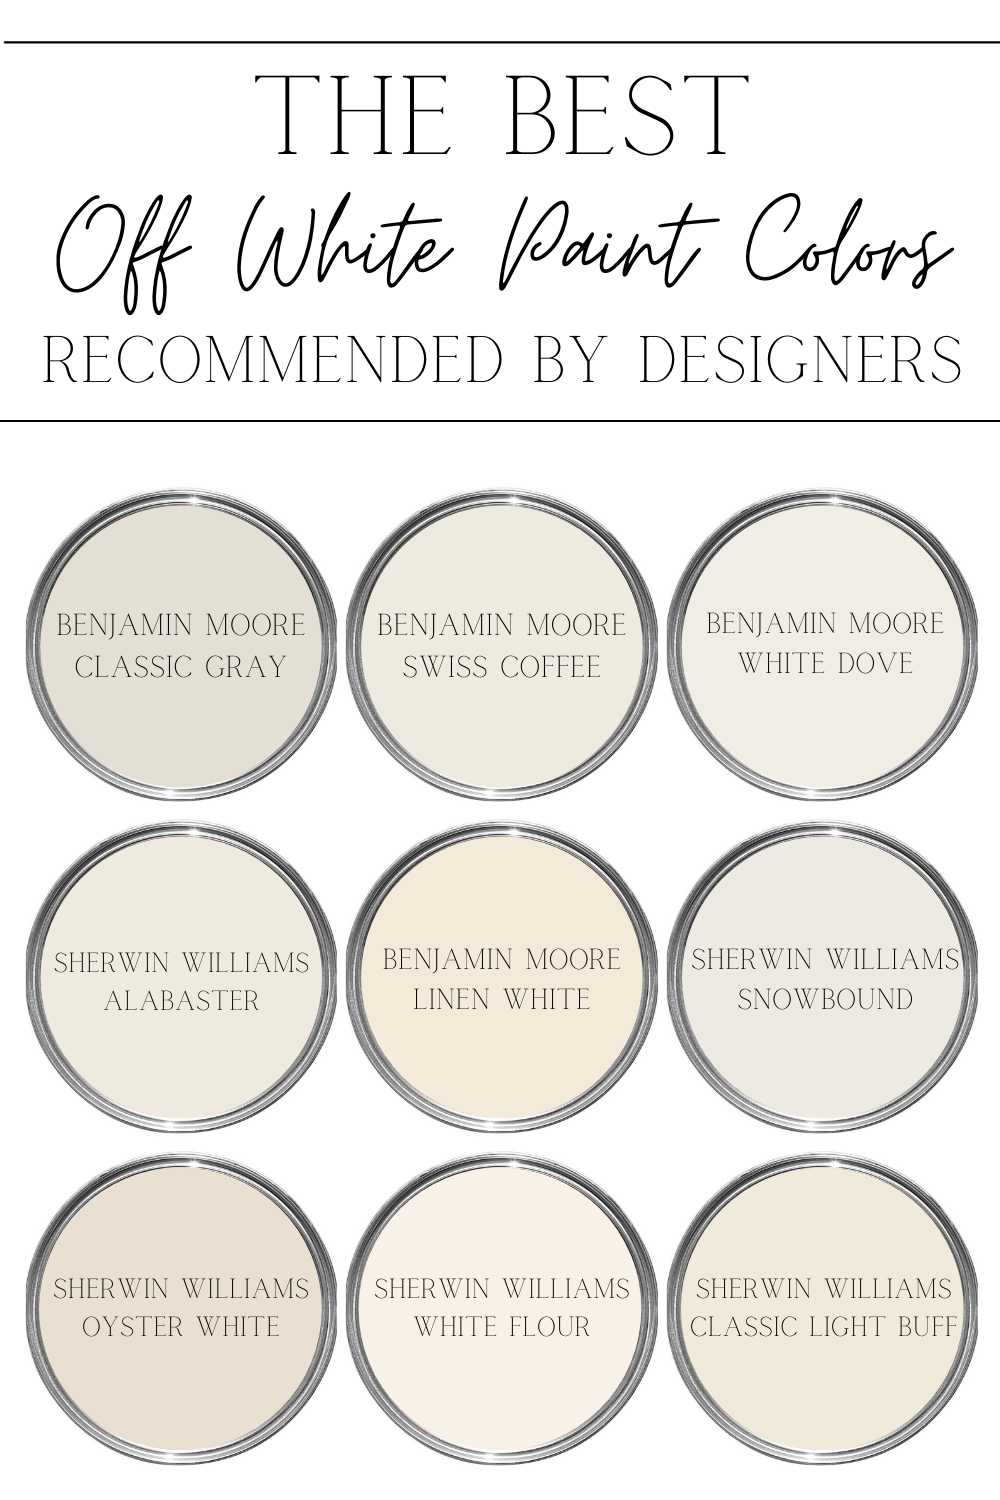 the best off white color paint recommended by designers